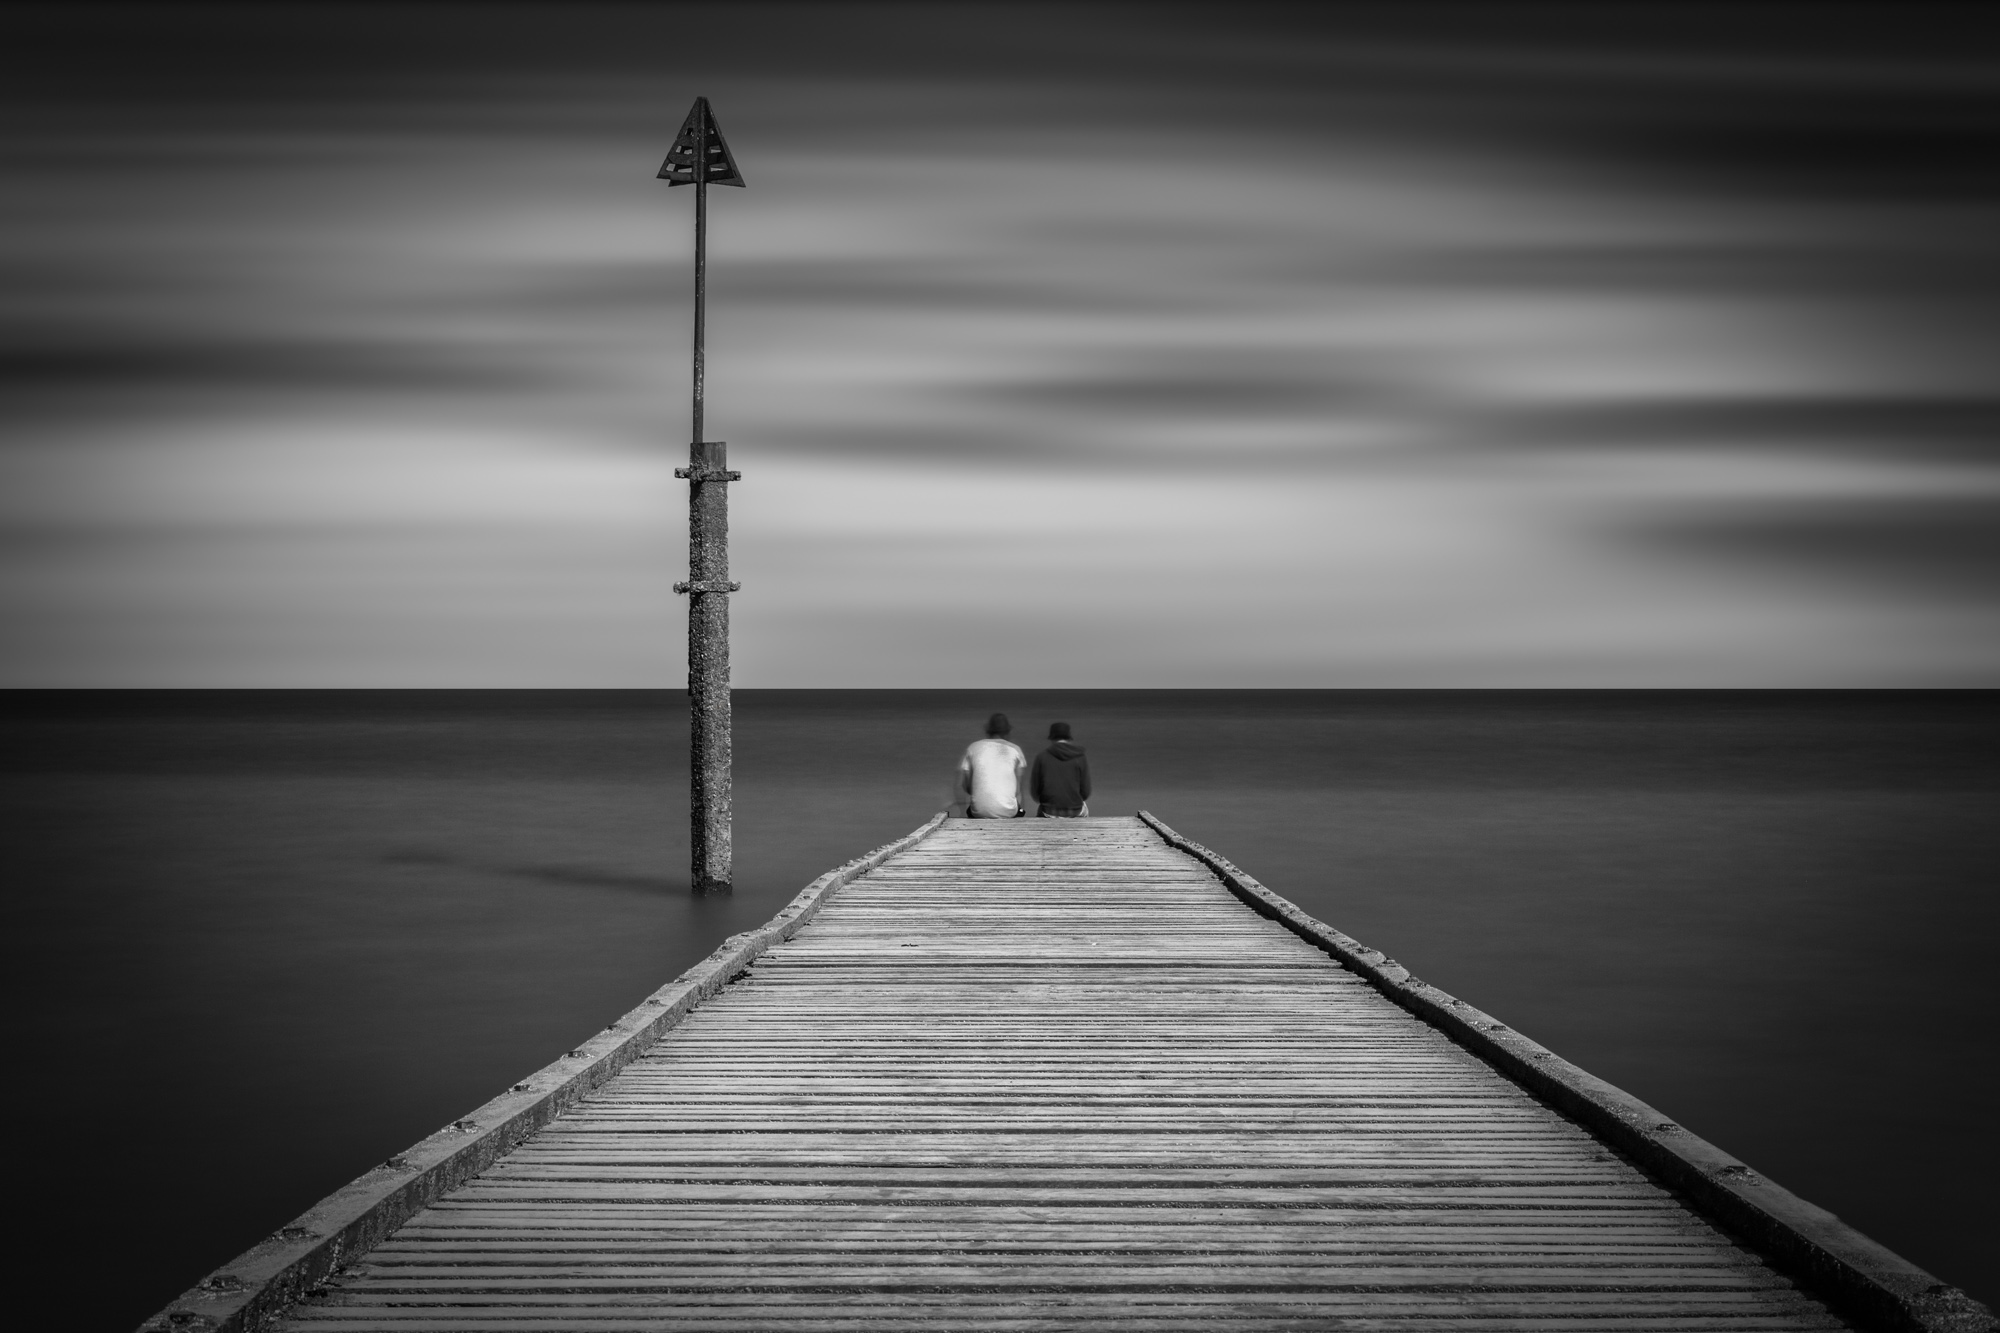 antonyz long exposure landscape photograph of two friends sitting at the end of a jetty